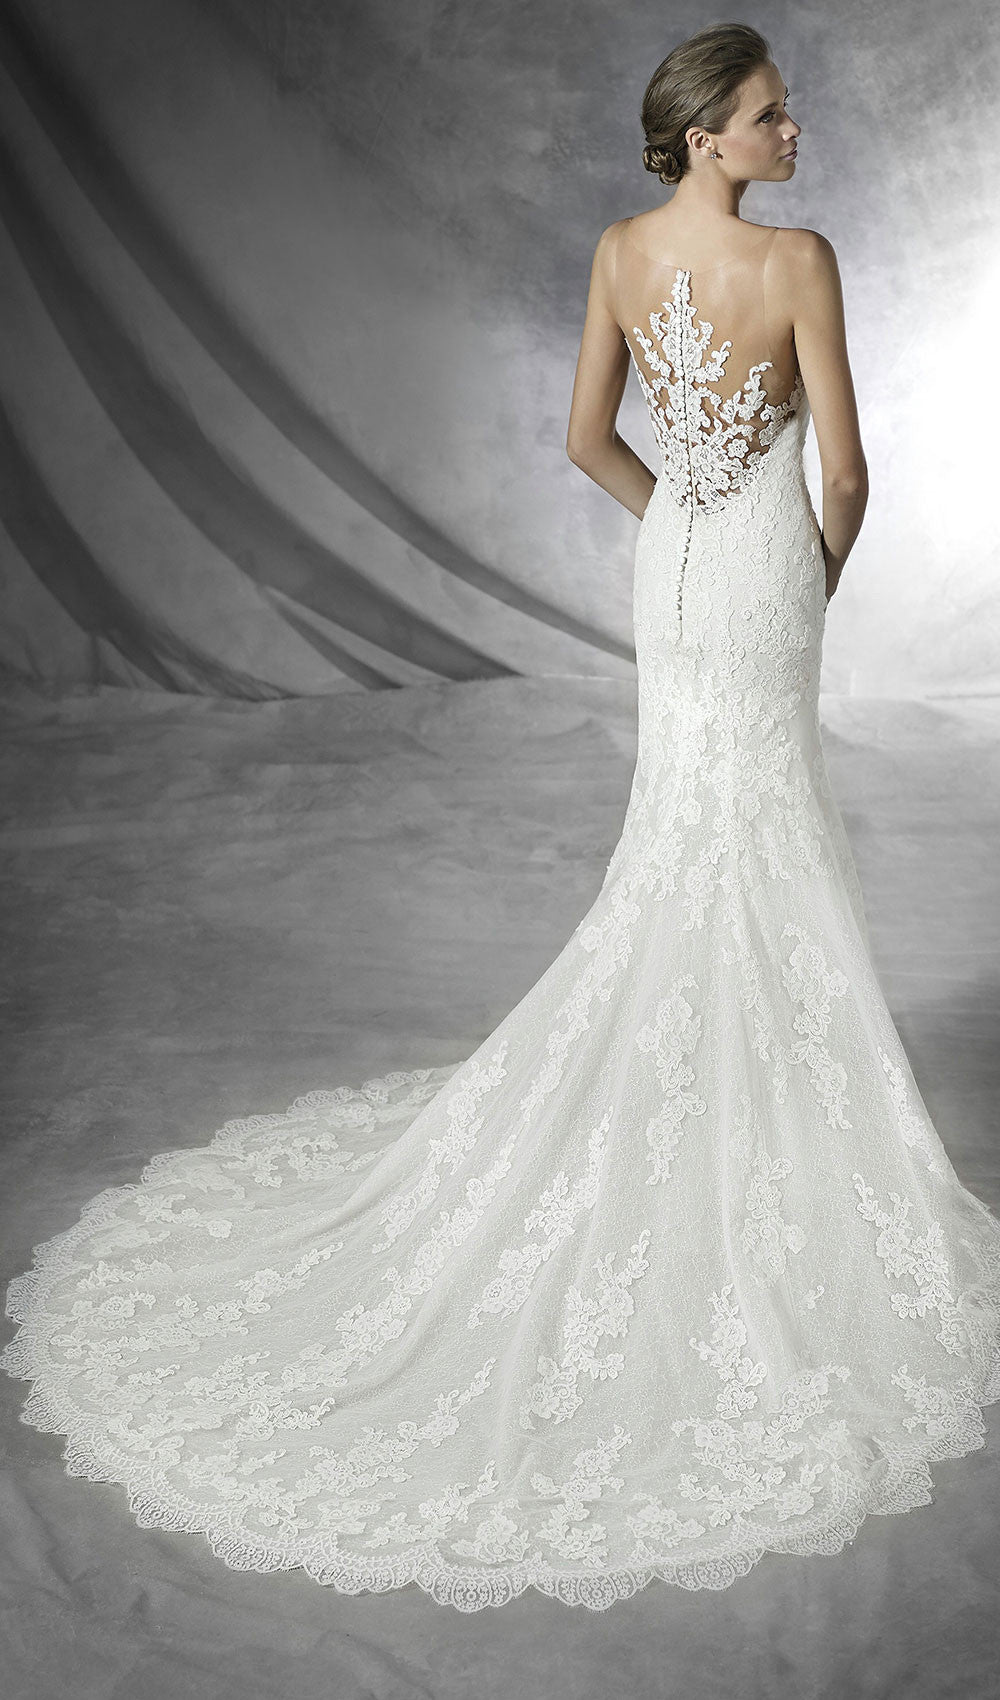 Pronovias - STYLE PLACIA |Schaffer's Bridal in Des Moines, Iowa  and in Scottsdale, Arizona